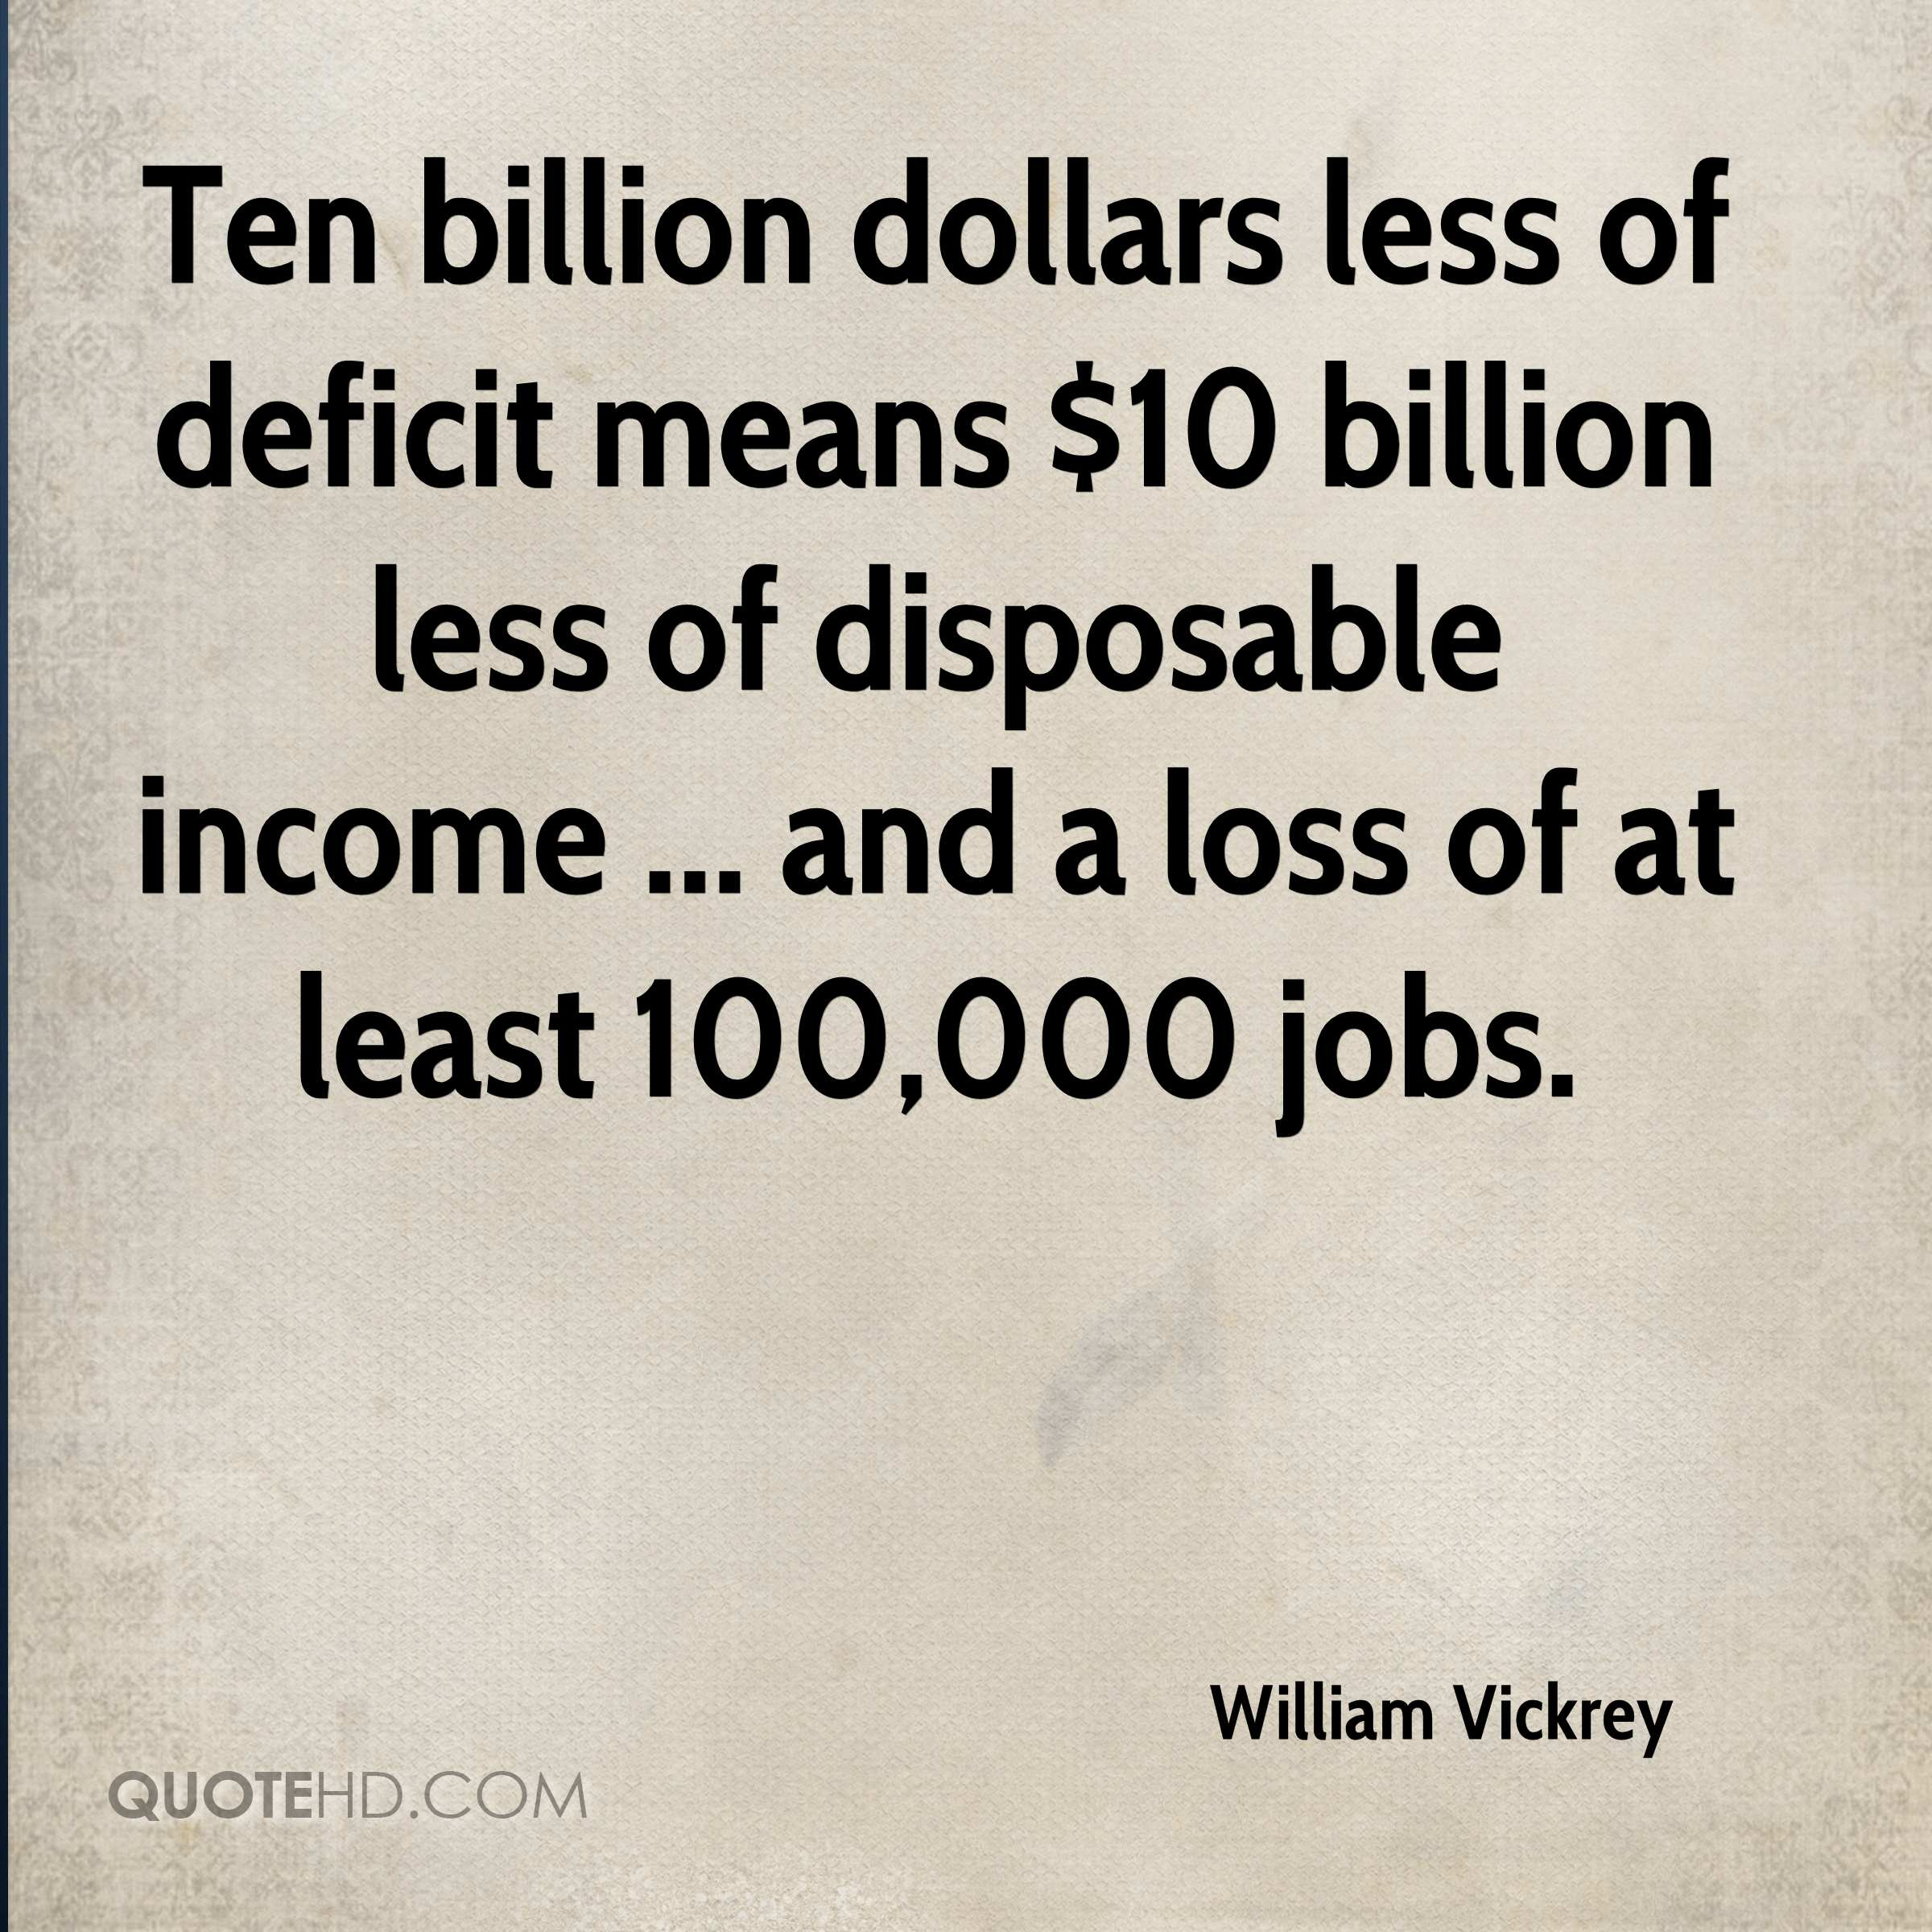 Ten billion dollars less of deficit means $10 billion less of disposable income ... and a loss of at least 100,000 jobs.